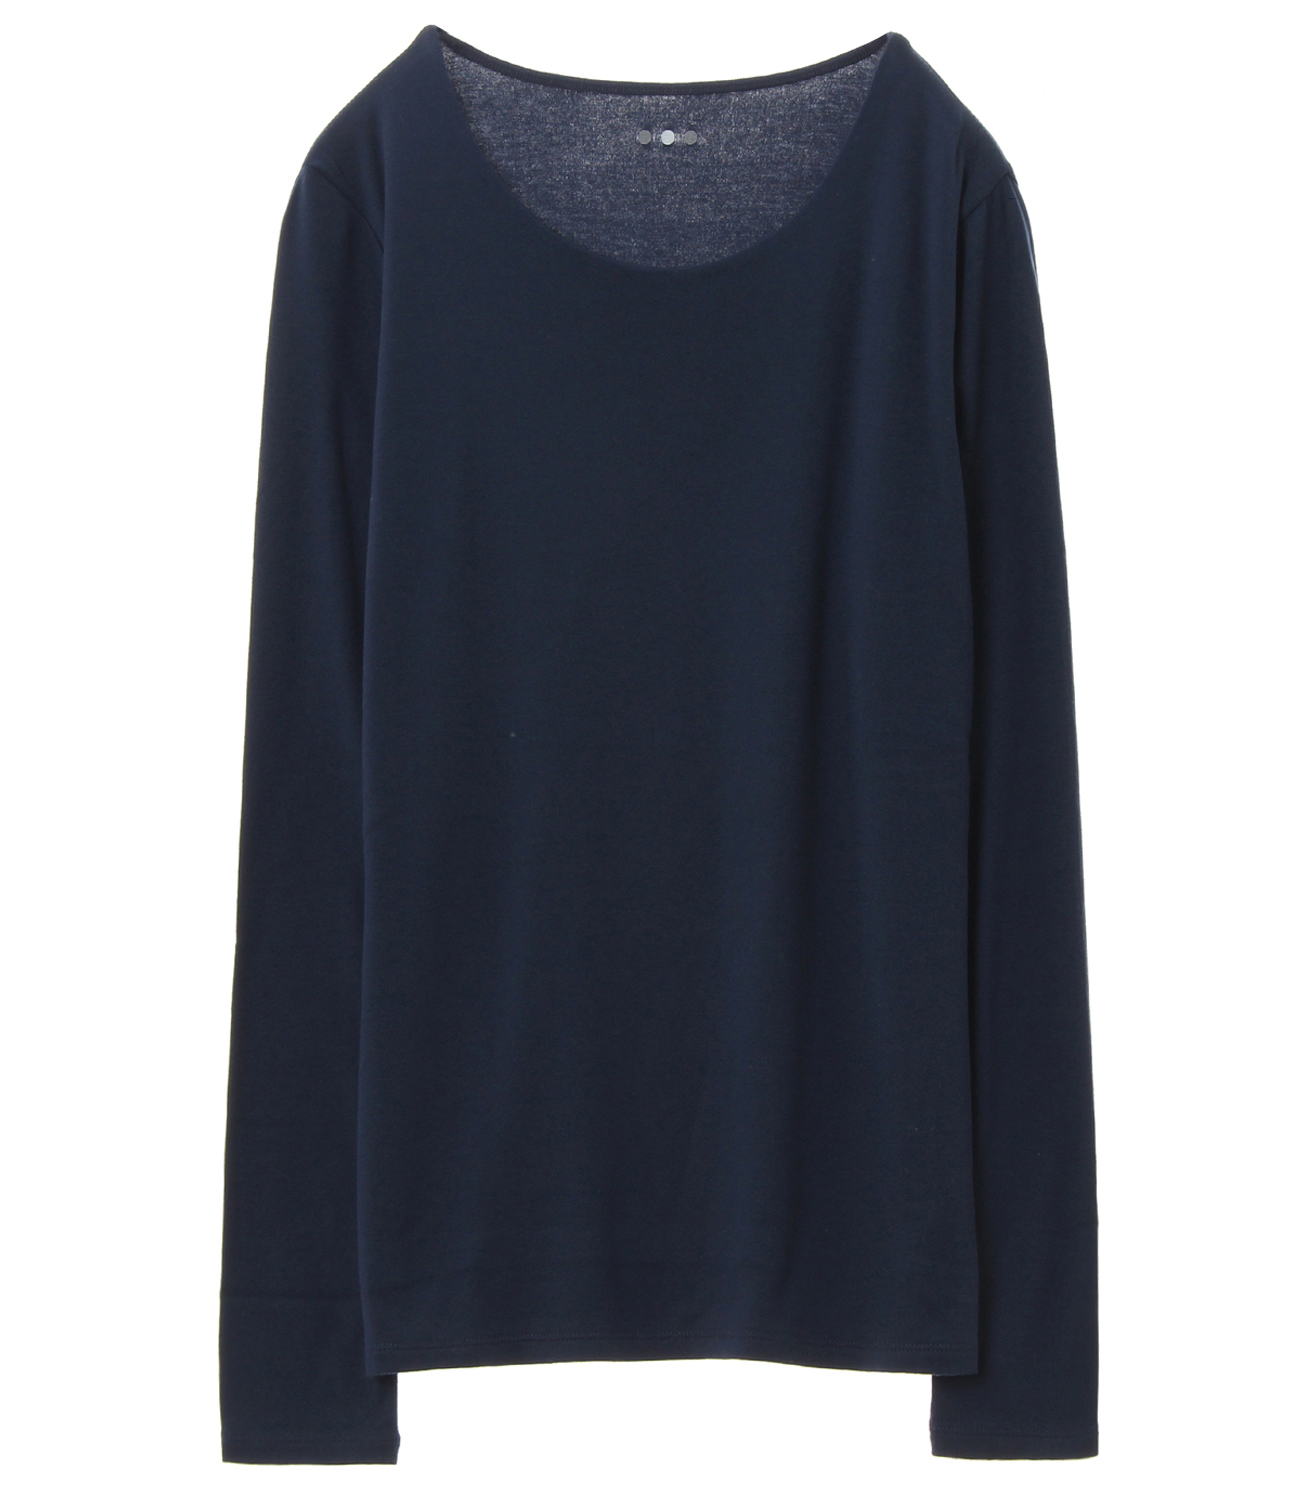 sustinable jersey l/s crewneck pullover 詳細画像 navy 1